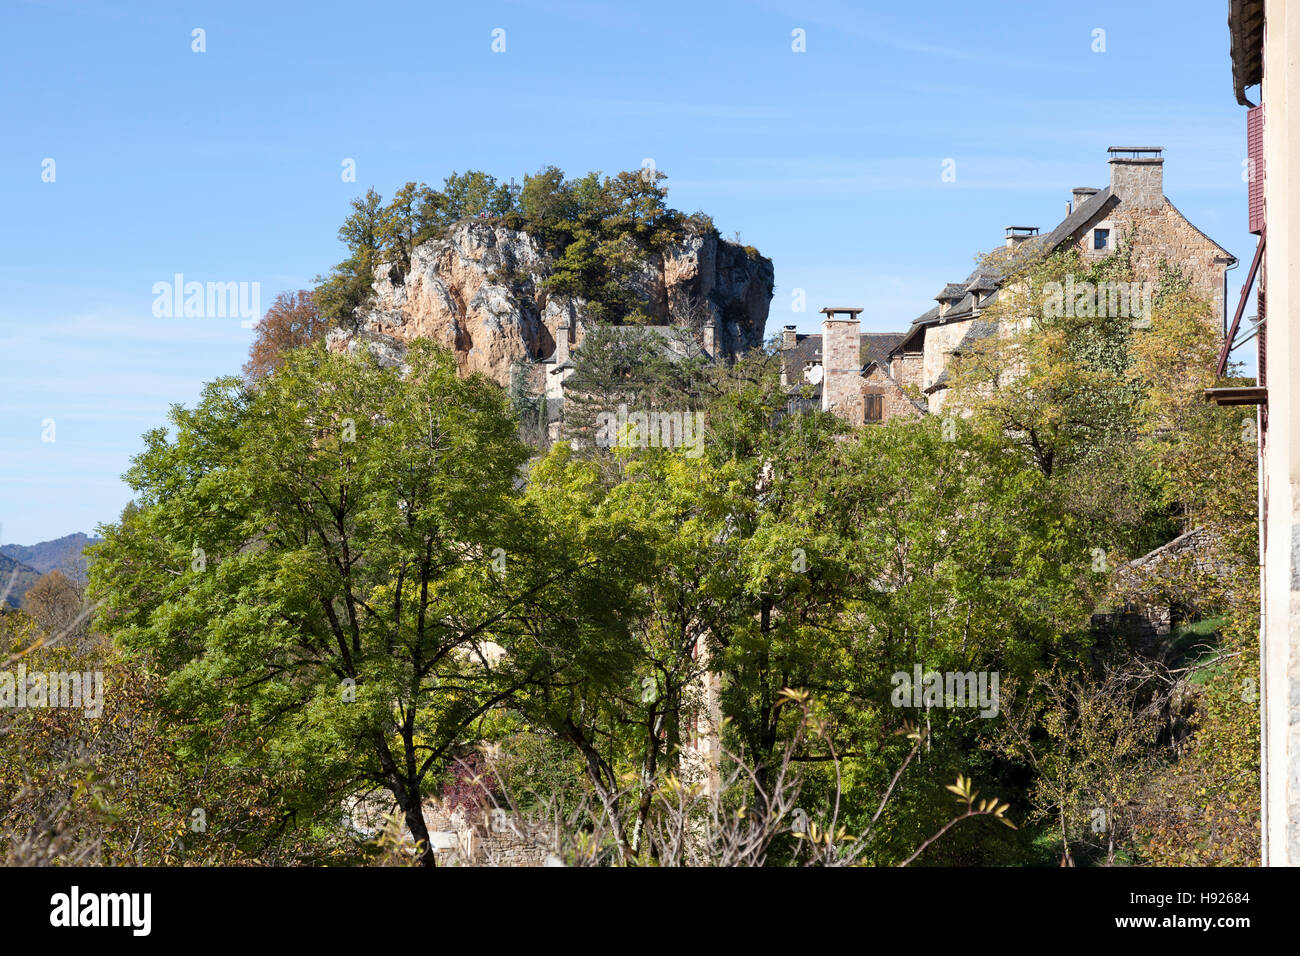 A low angle shot on a part of the village of Rodelle perched on its rocky outcrop (France). Une partie du village - Stock Image